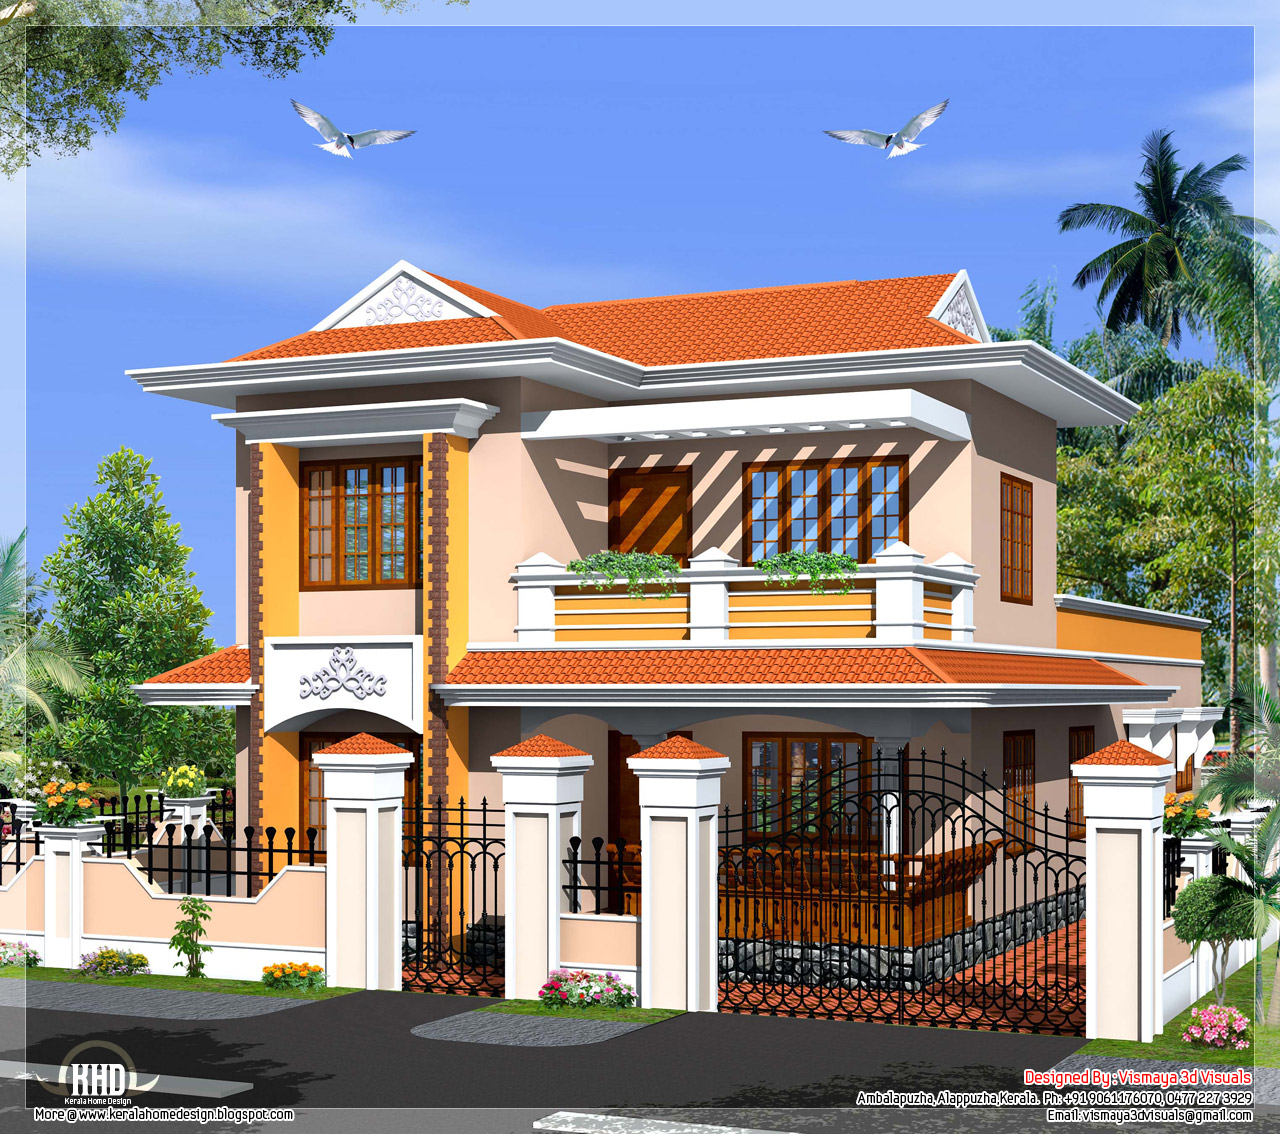 Kerala model villa in 2110 in square feet house design plans Latest model houses